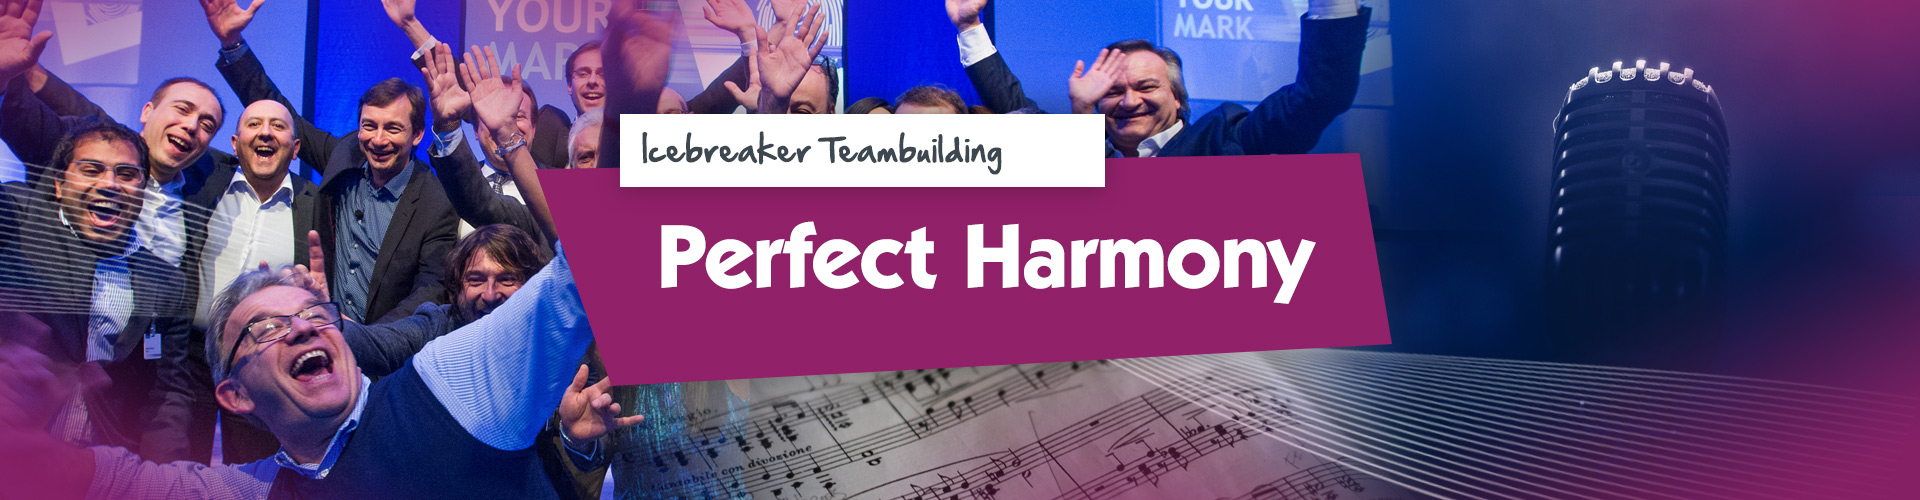 Teambuilding | Perfect Harmony